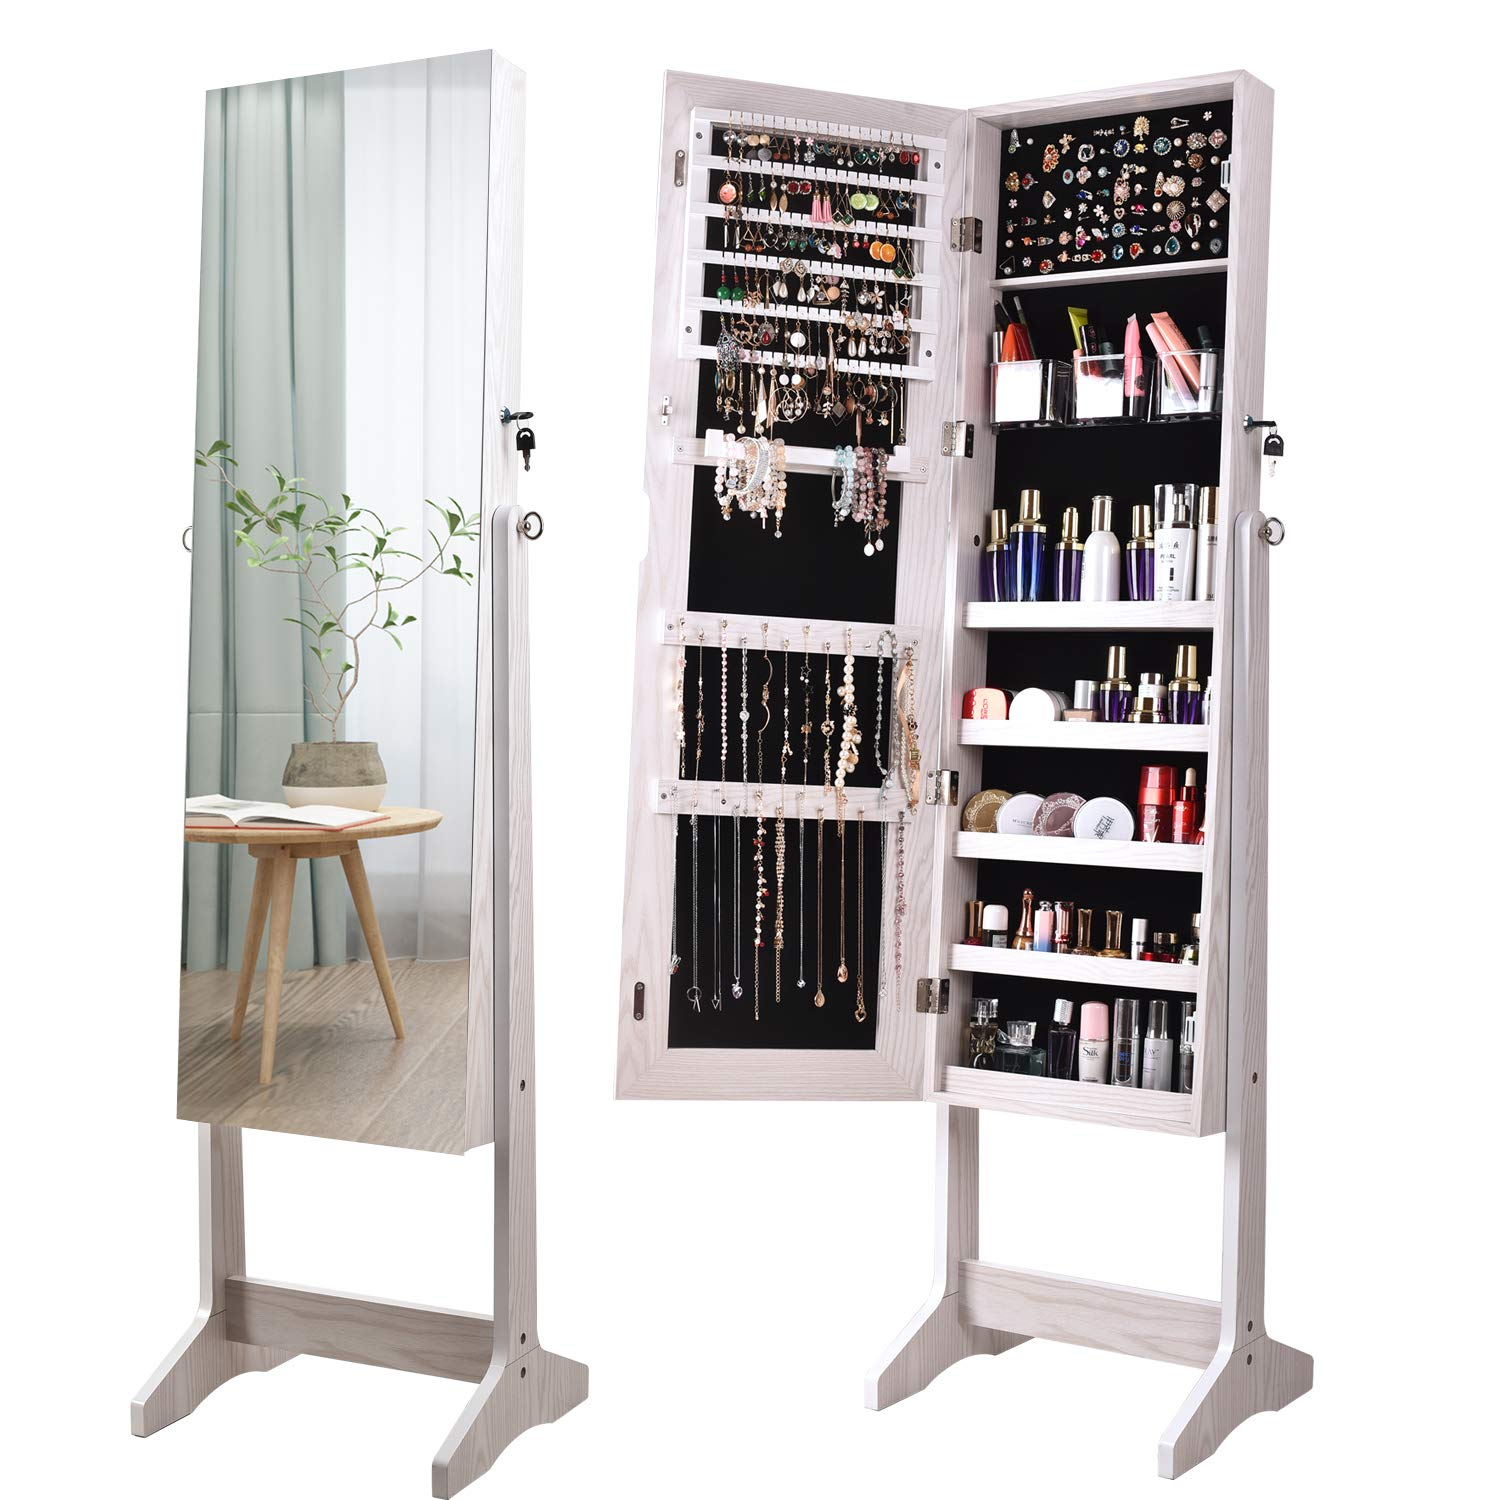 ORAF Jewelry Organizer,Jewelry Armoire Cabinet Standing Jewelry Box with Full Body Mirror and Large Storage Lockable Wooden Cabinet